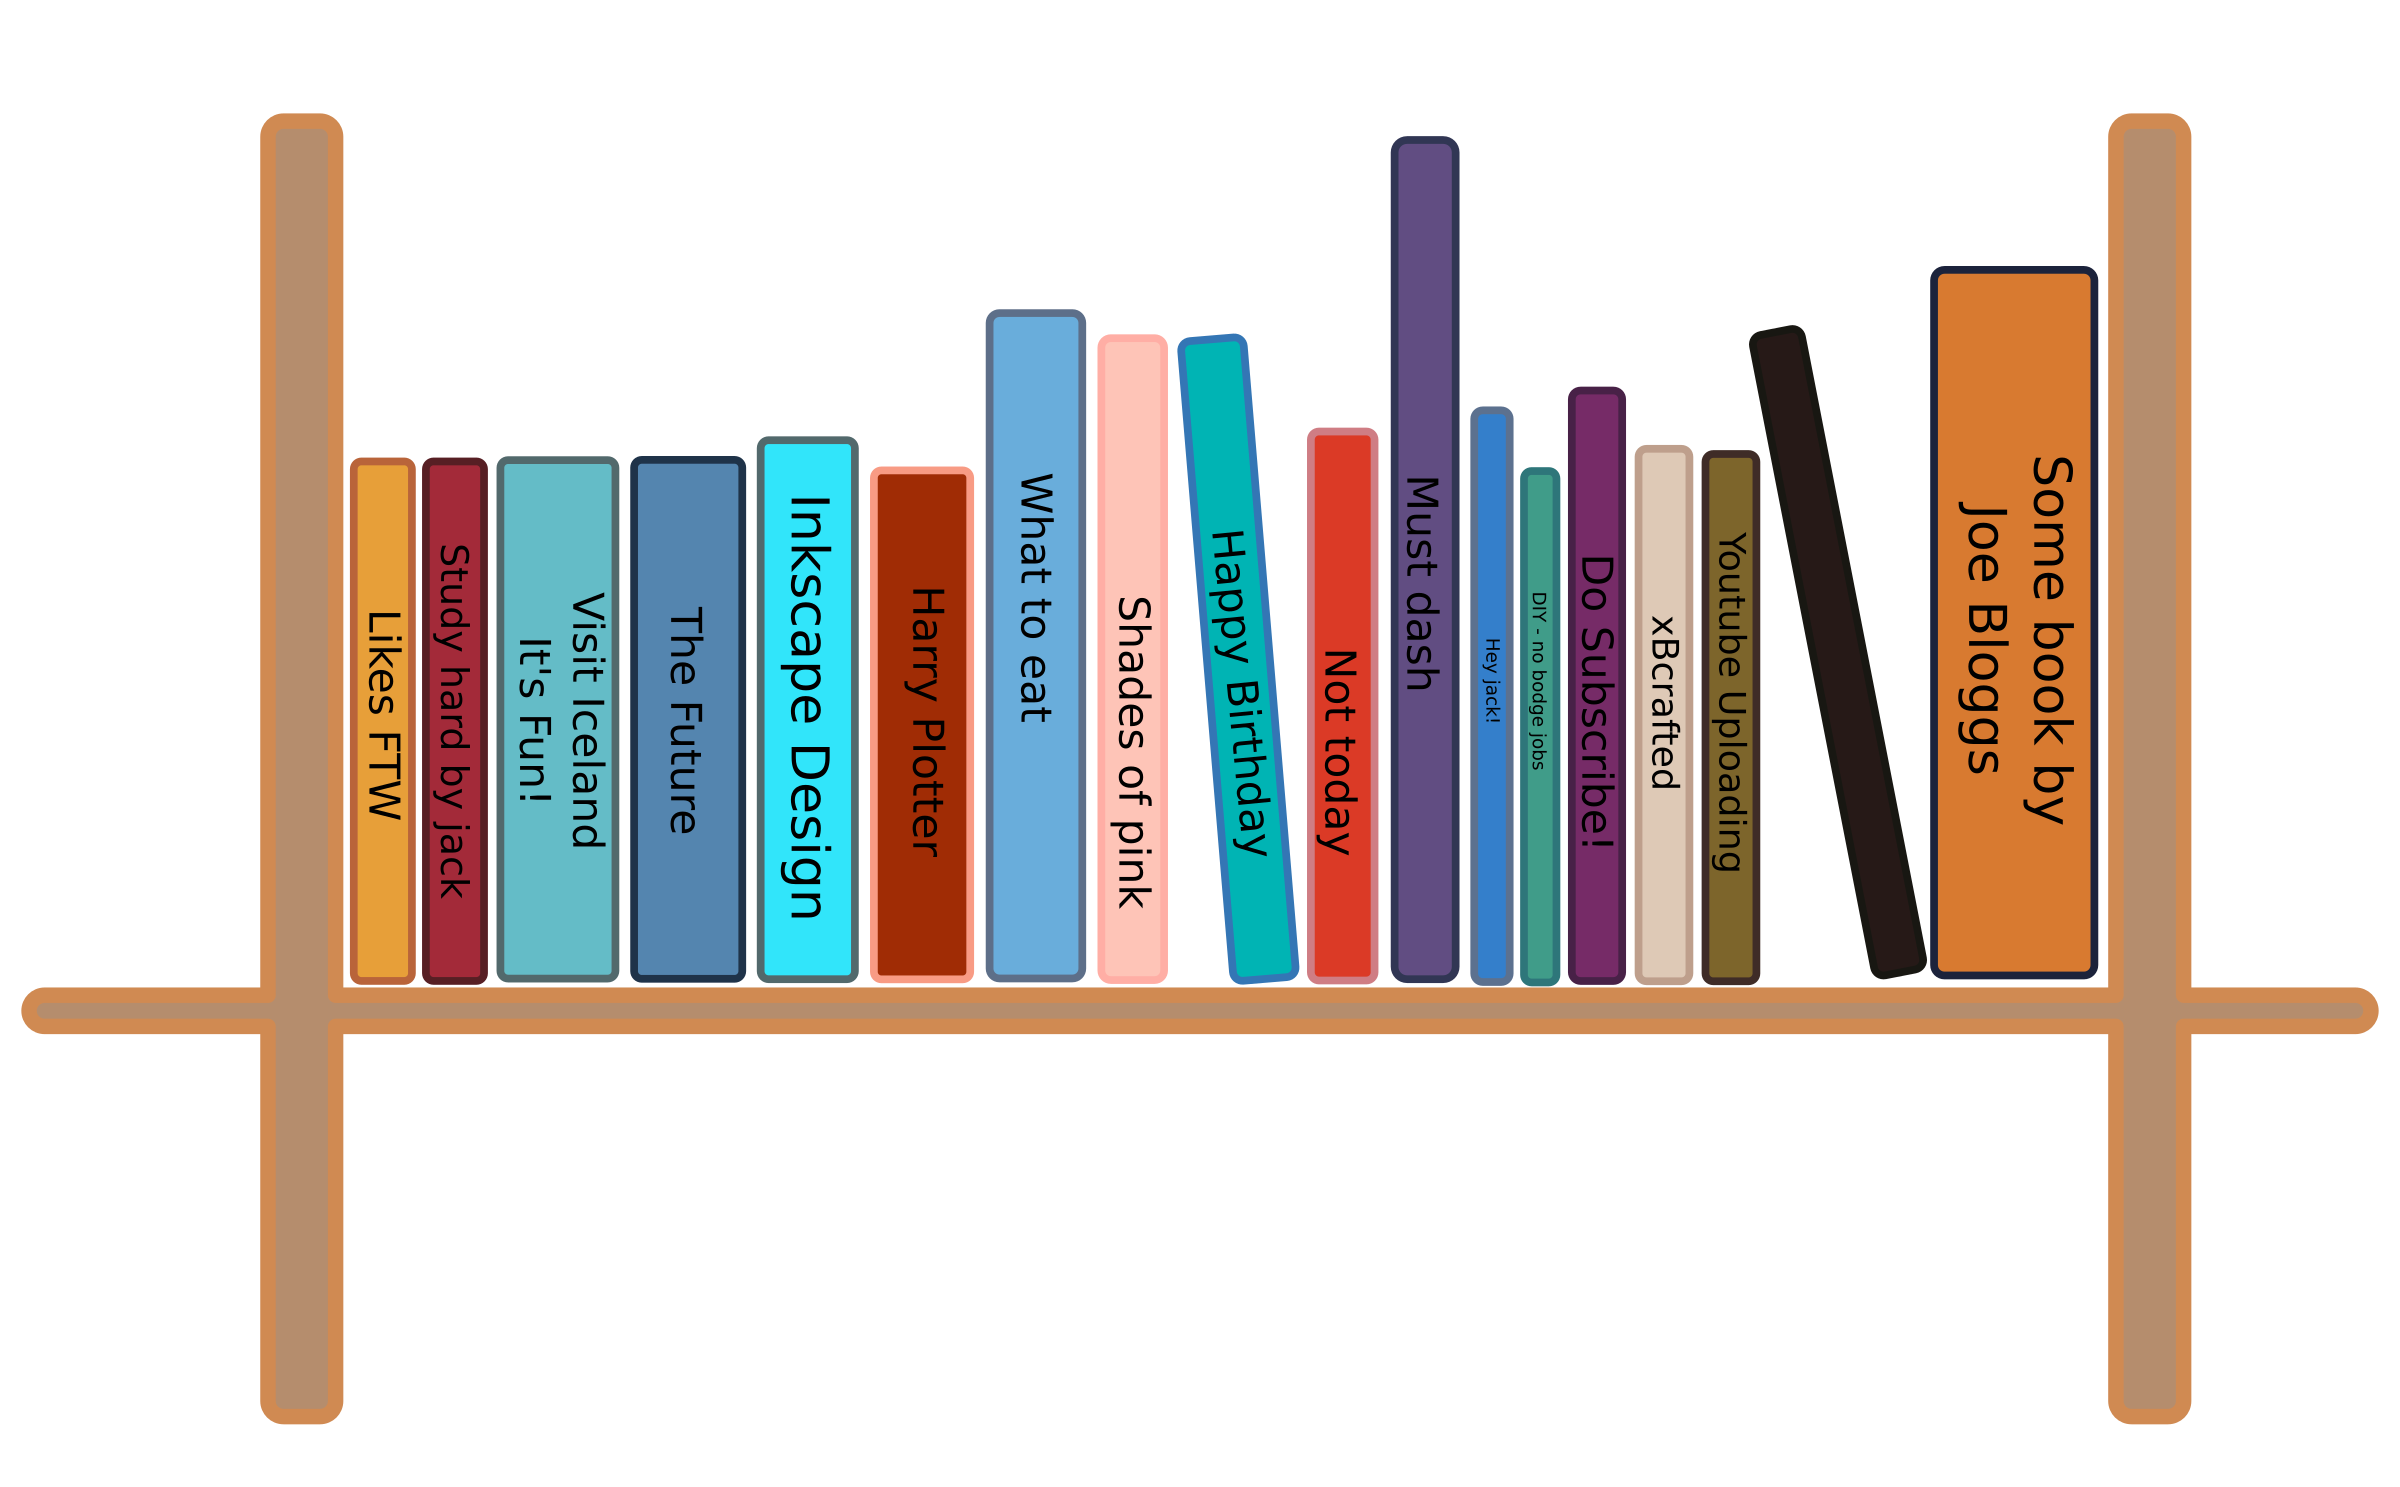 Library clipart library shelf. Book speed designed big